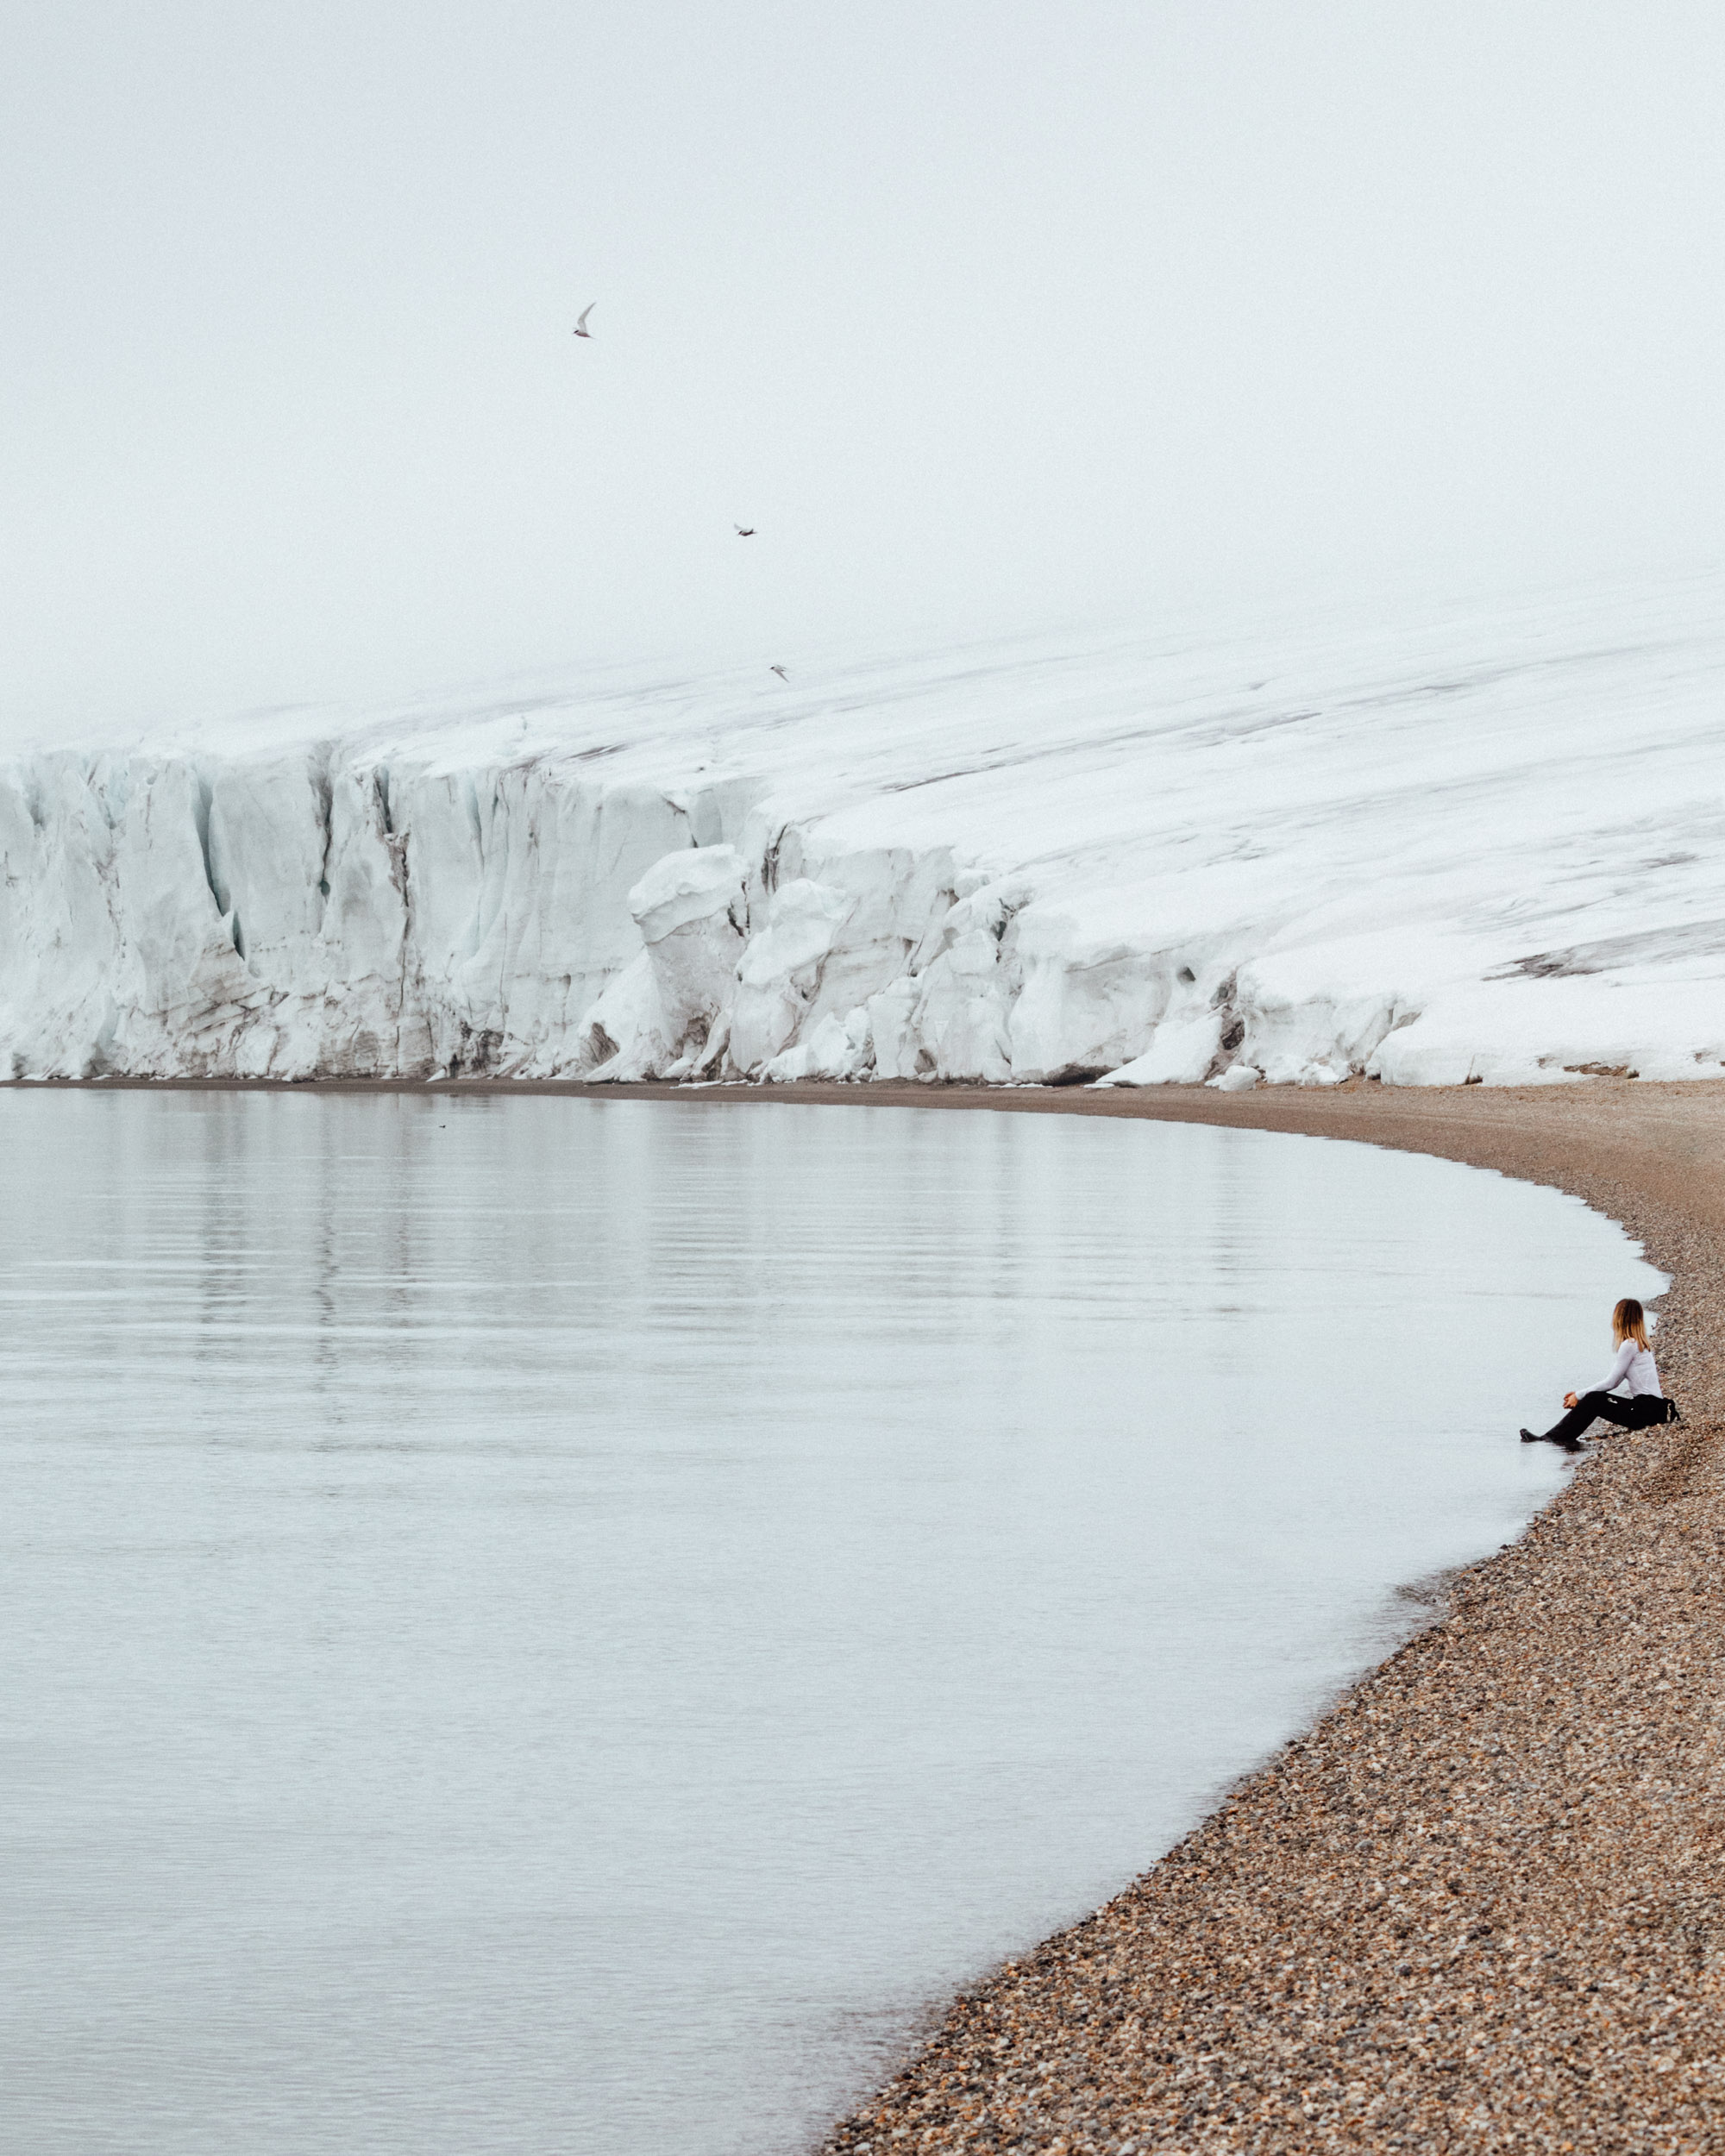 Glacier on the beach in Torrellneset Svalbard Spitsbergen via @finduslost